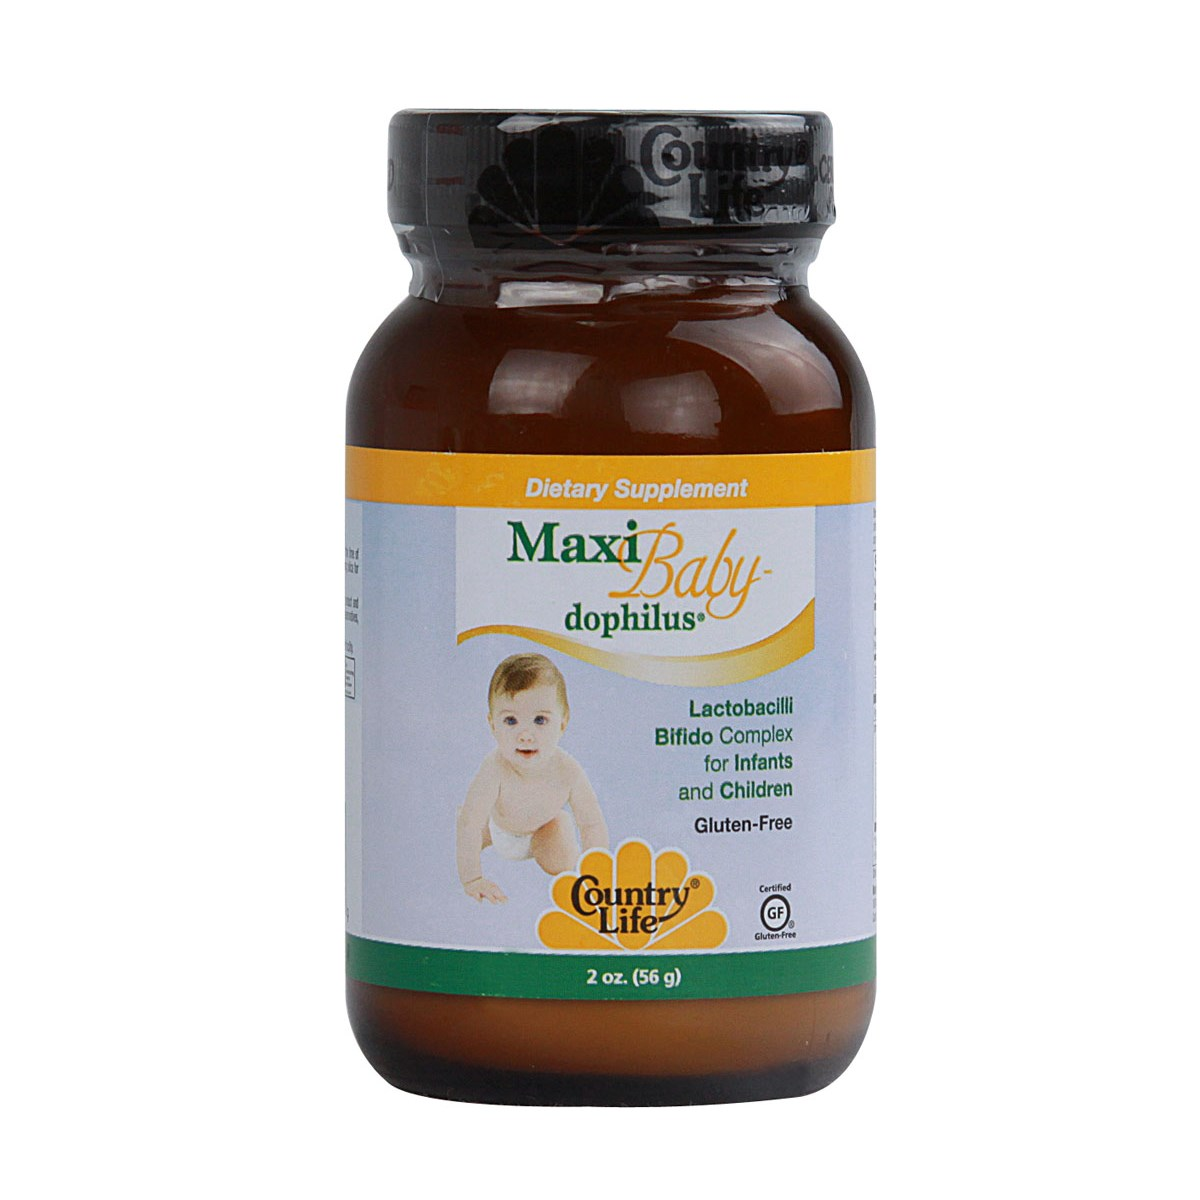 Country Life Vitamins - Maxi Baby Dophilus 2 oz Powder